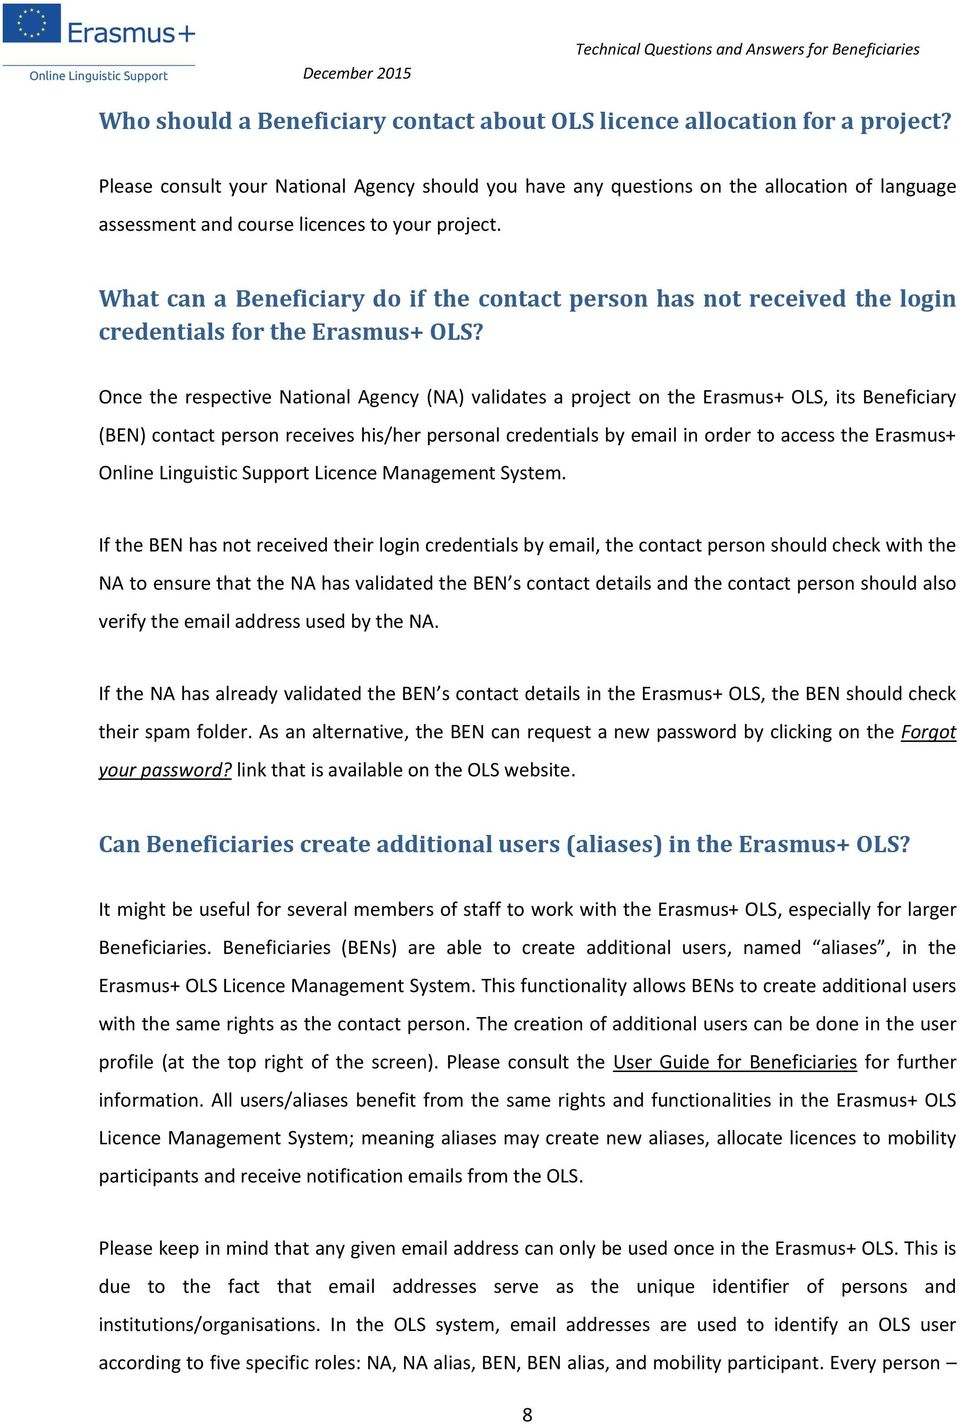 What can a Beneficiary do if the contact person has not received the login credentials for the Erasmus+ OLS?